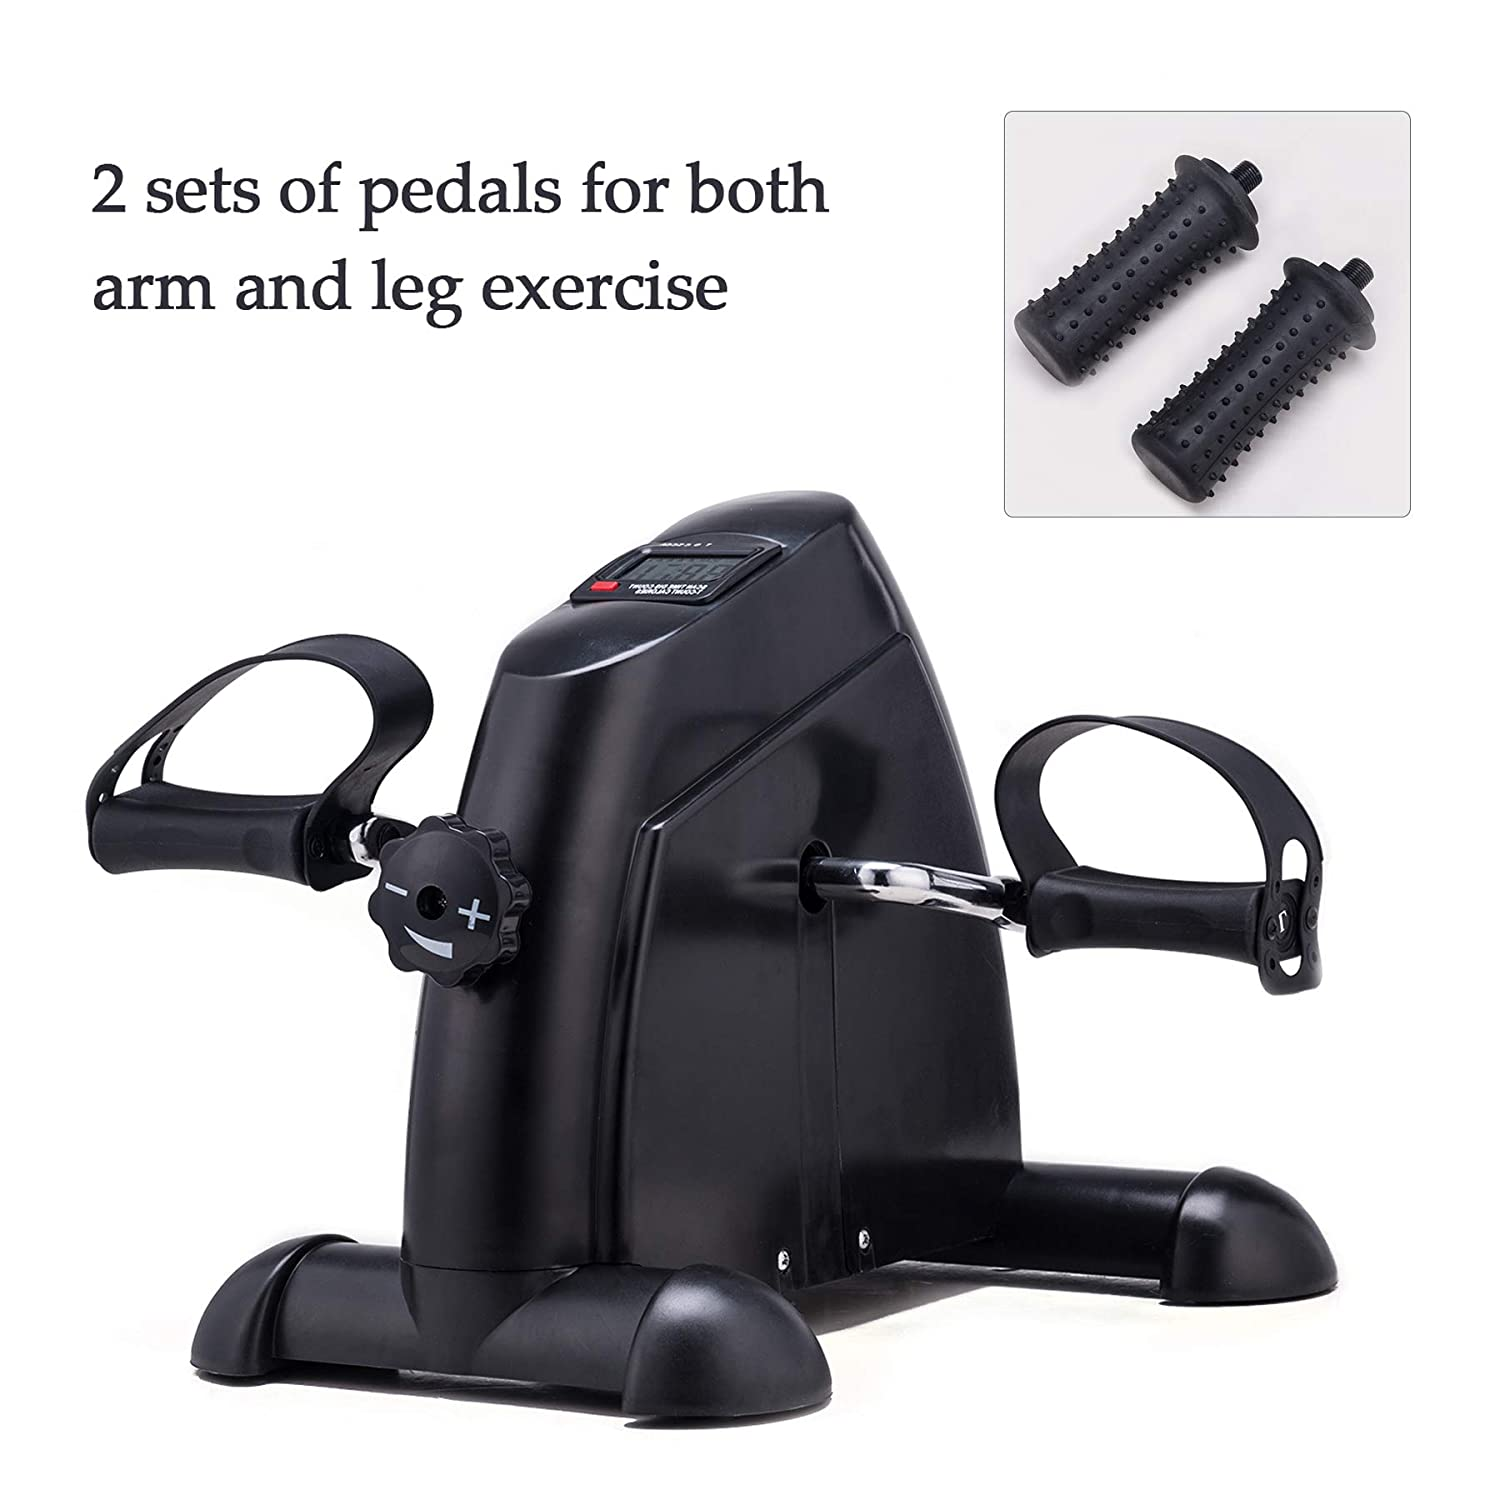 Pinty Pedal Exerciser Two Pedals Mini Exercise Bike Portable Under Desk Mini Cycle Bike Legs and Arms Exerciser with LCD Display